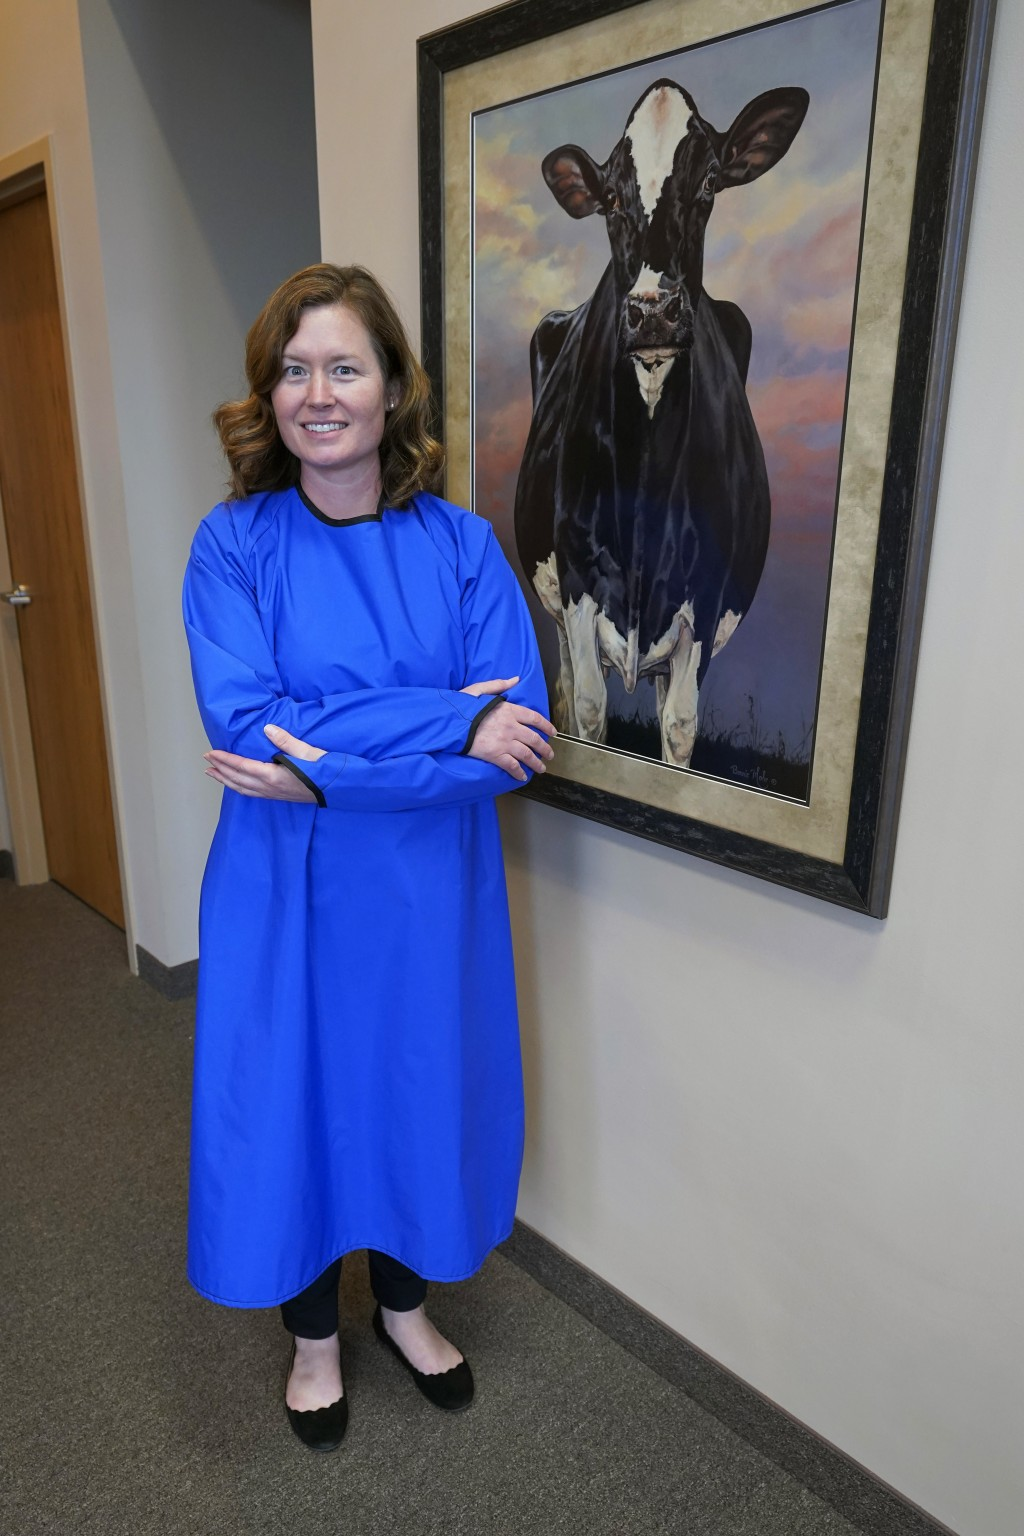 ADVANCE FOR RELEASE SATURDAY, DEC. 19, 2020 AND THEREAFTER -  Ann Quigley poses Tuesday, Dec. 15, 2020, in a waterproof gown intended for milking cows...